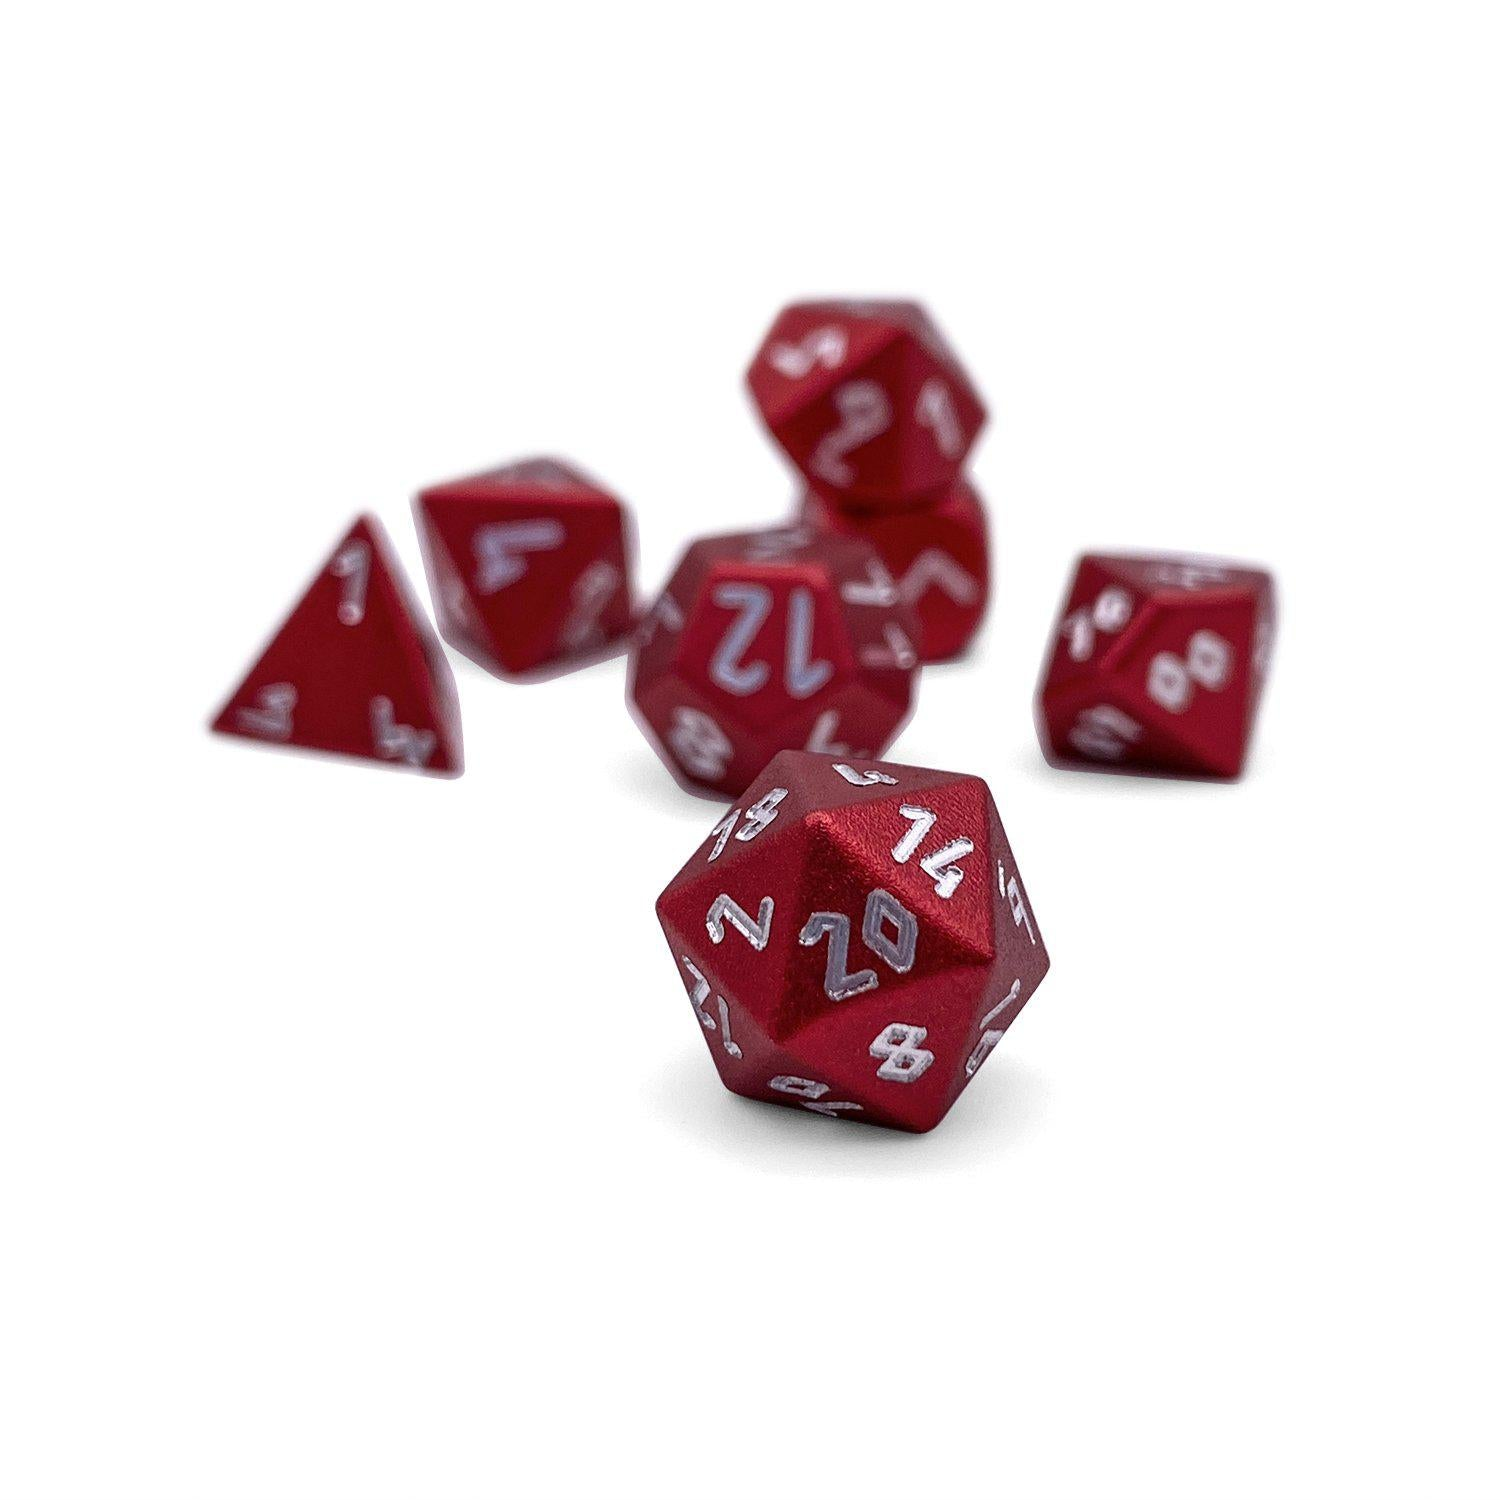 Devils Red Pebble ™ Dice - 10mm 6063 Aircraft Grade Aluminum Mini